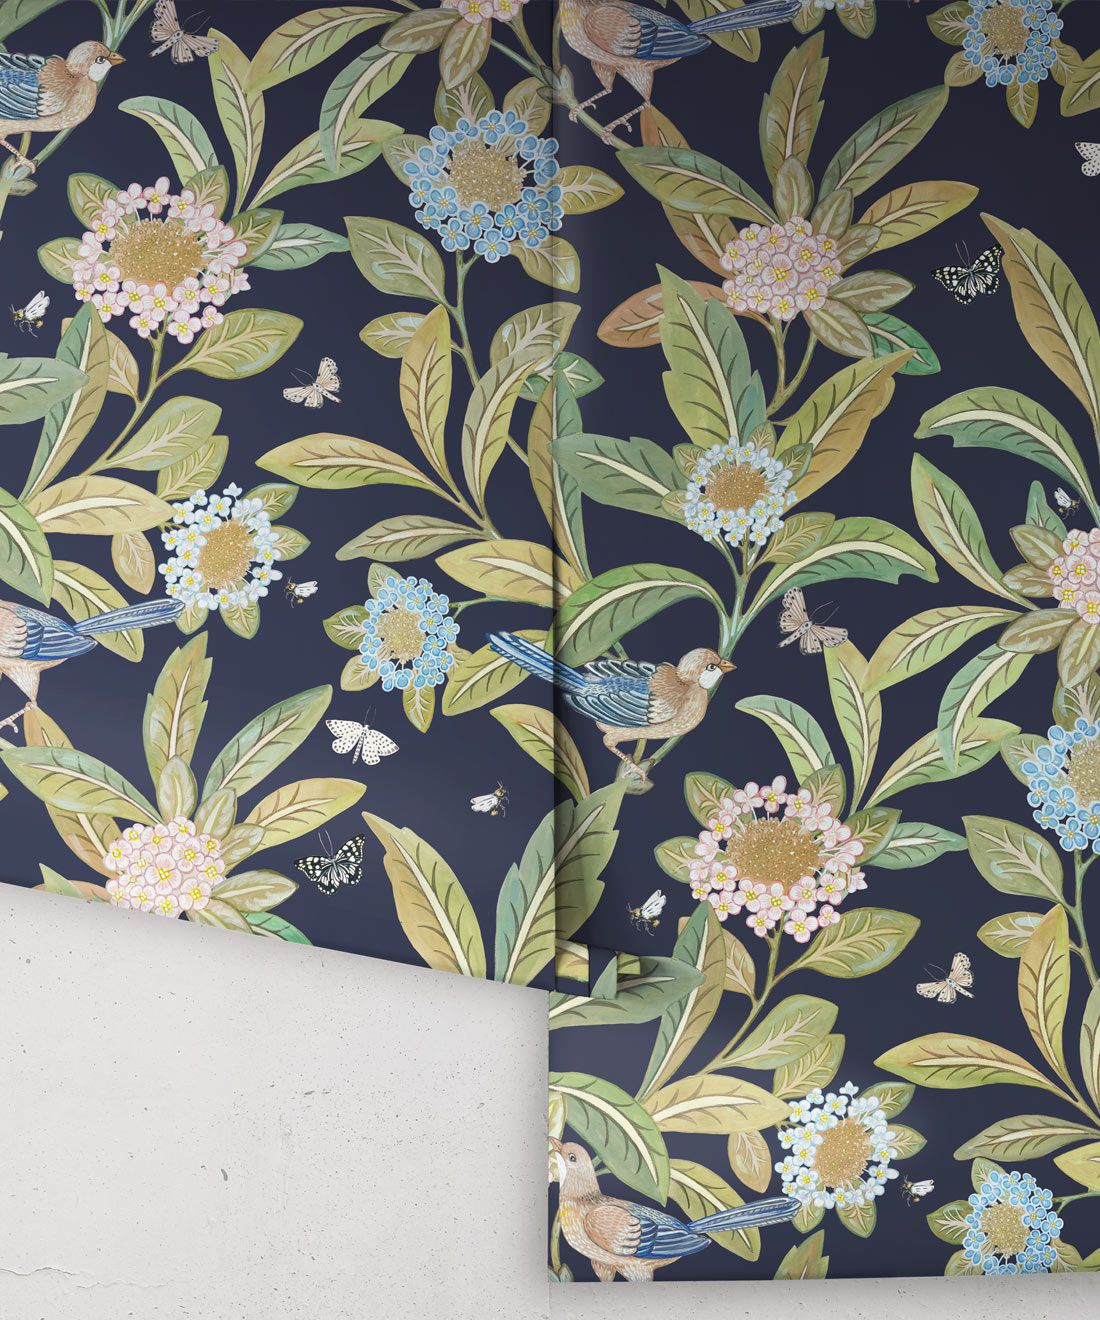 Summer Garden Wallpaper • Navy Wallpaper • Floral Wallpaper Rolls